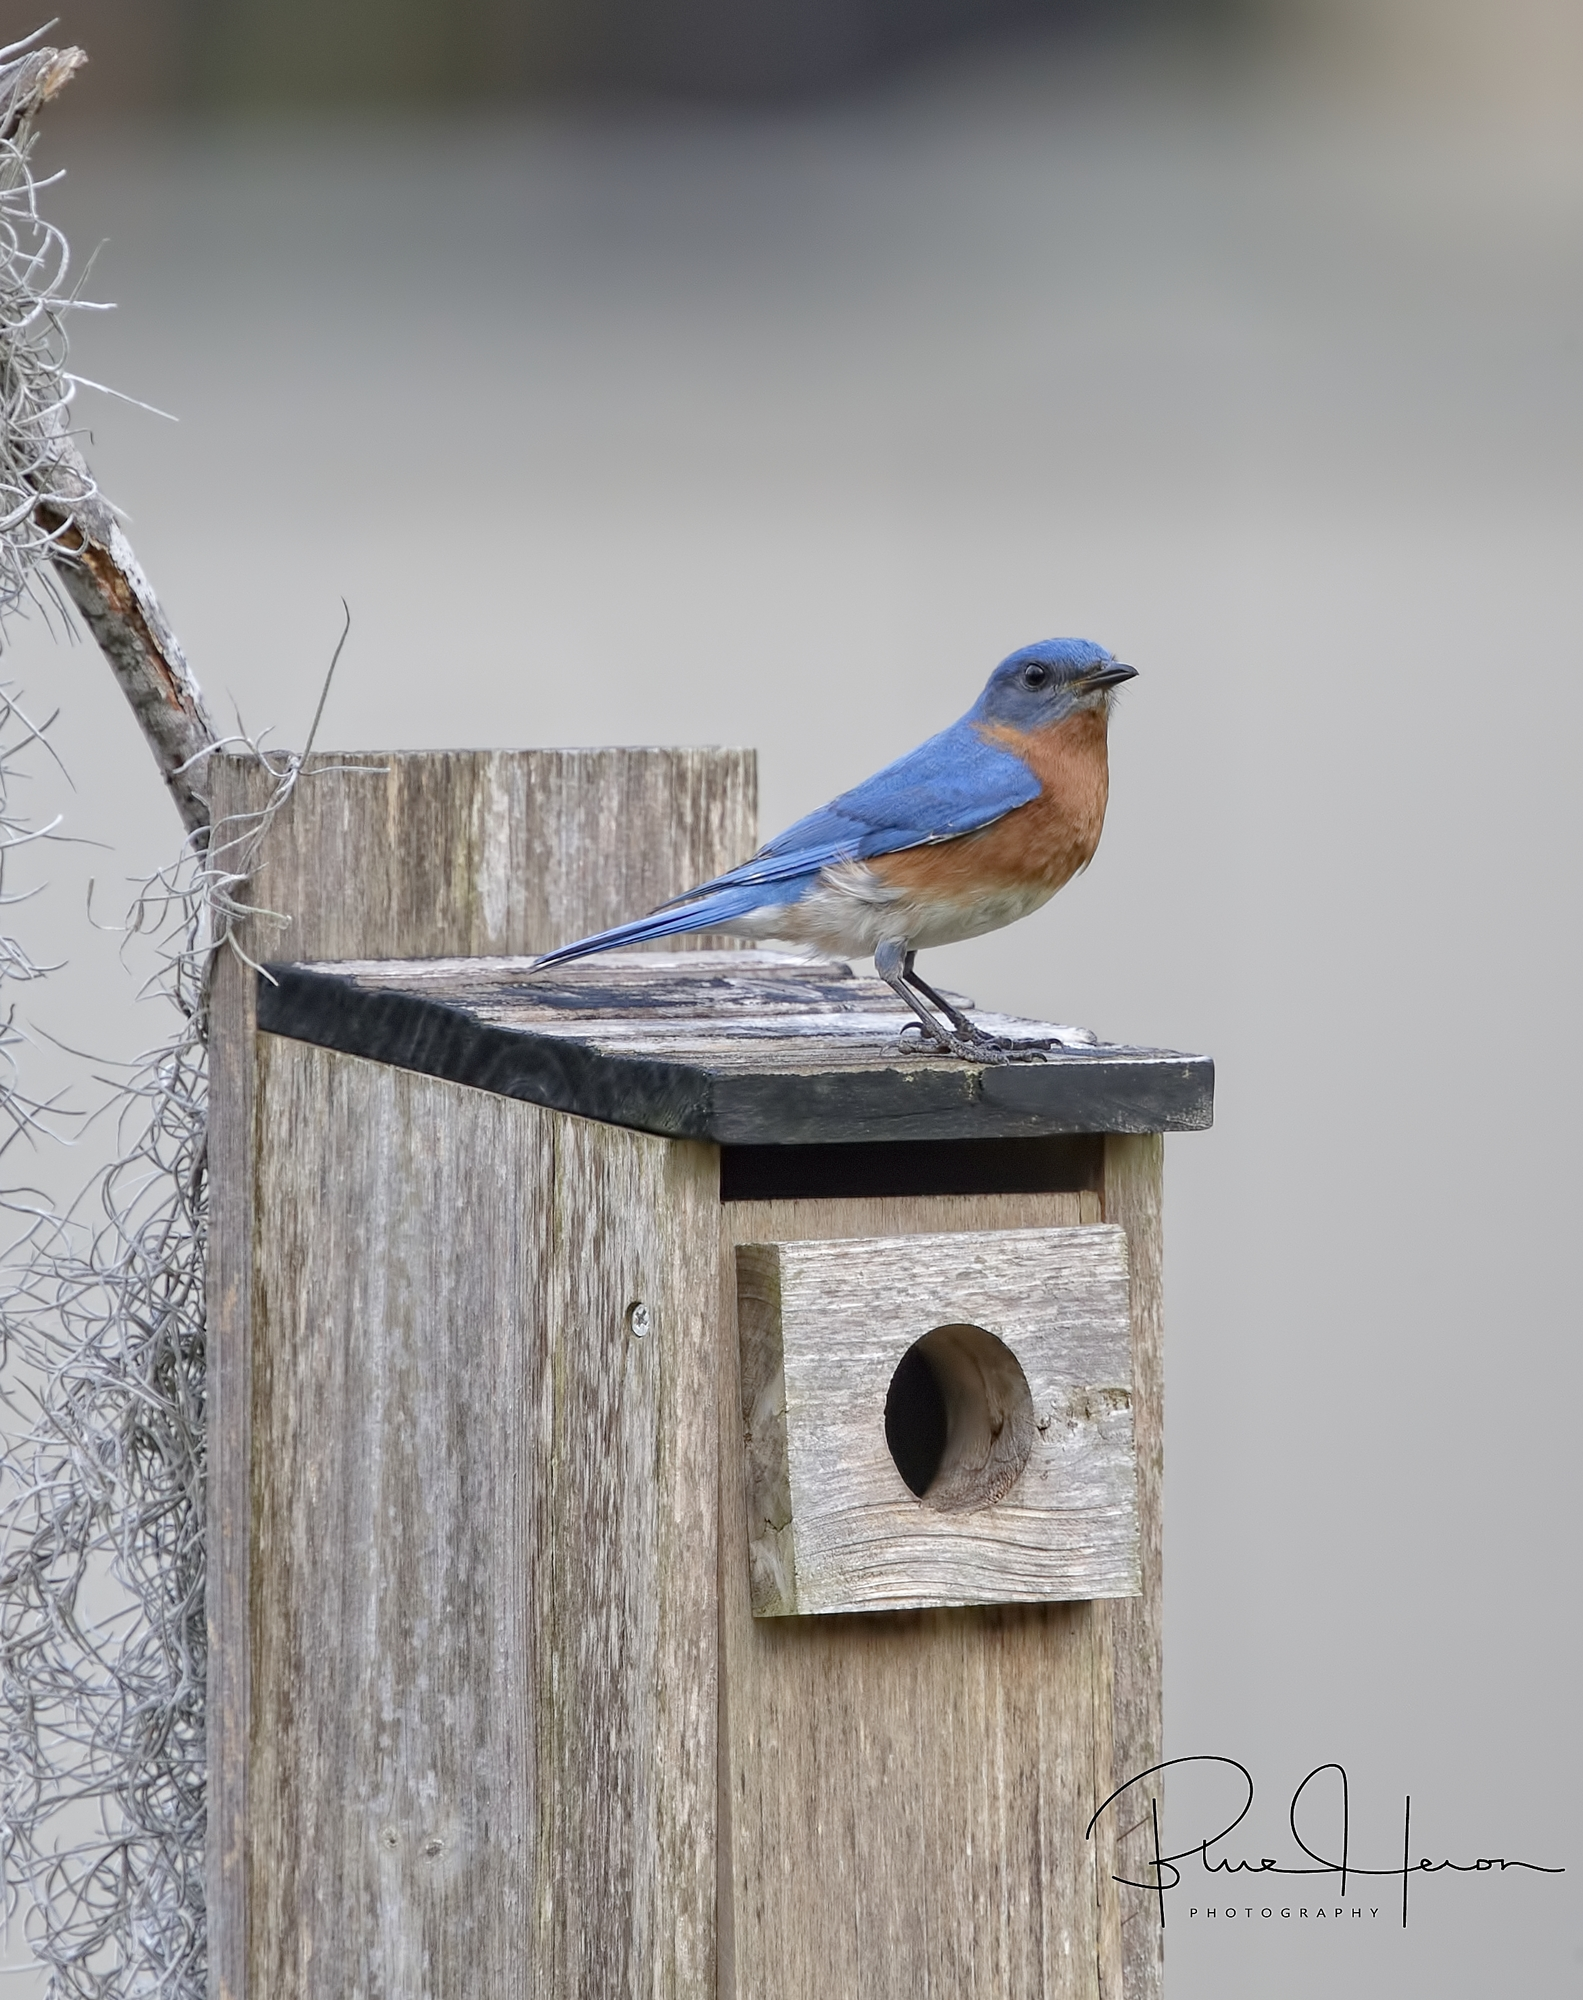 The nest is now empty, the job is done..a job well done for two busy Bluebirds..